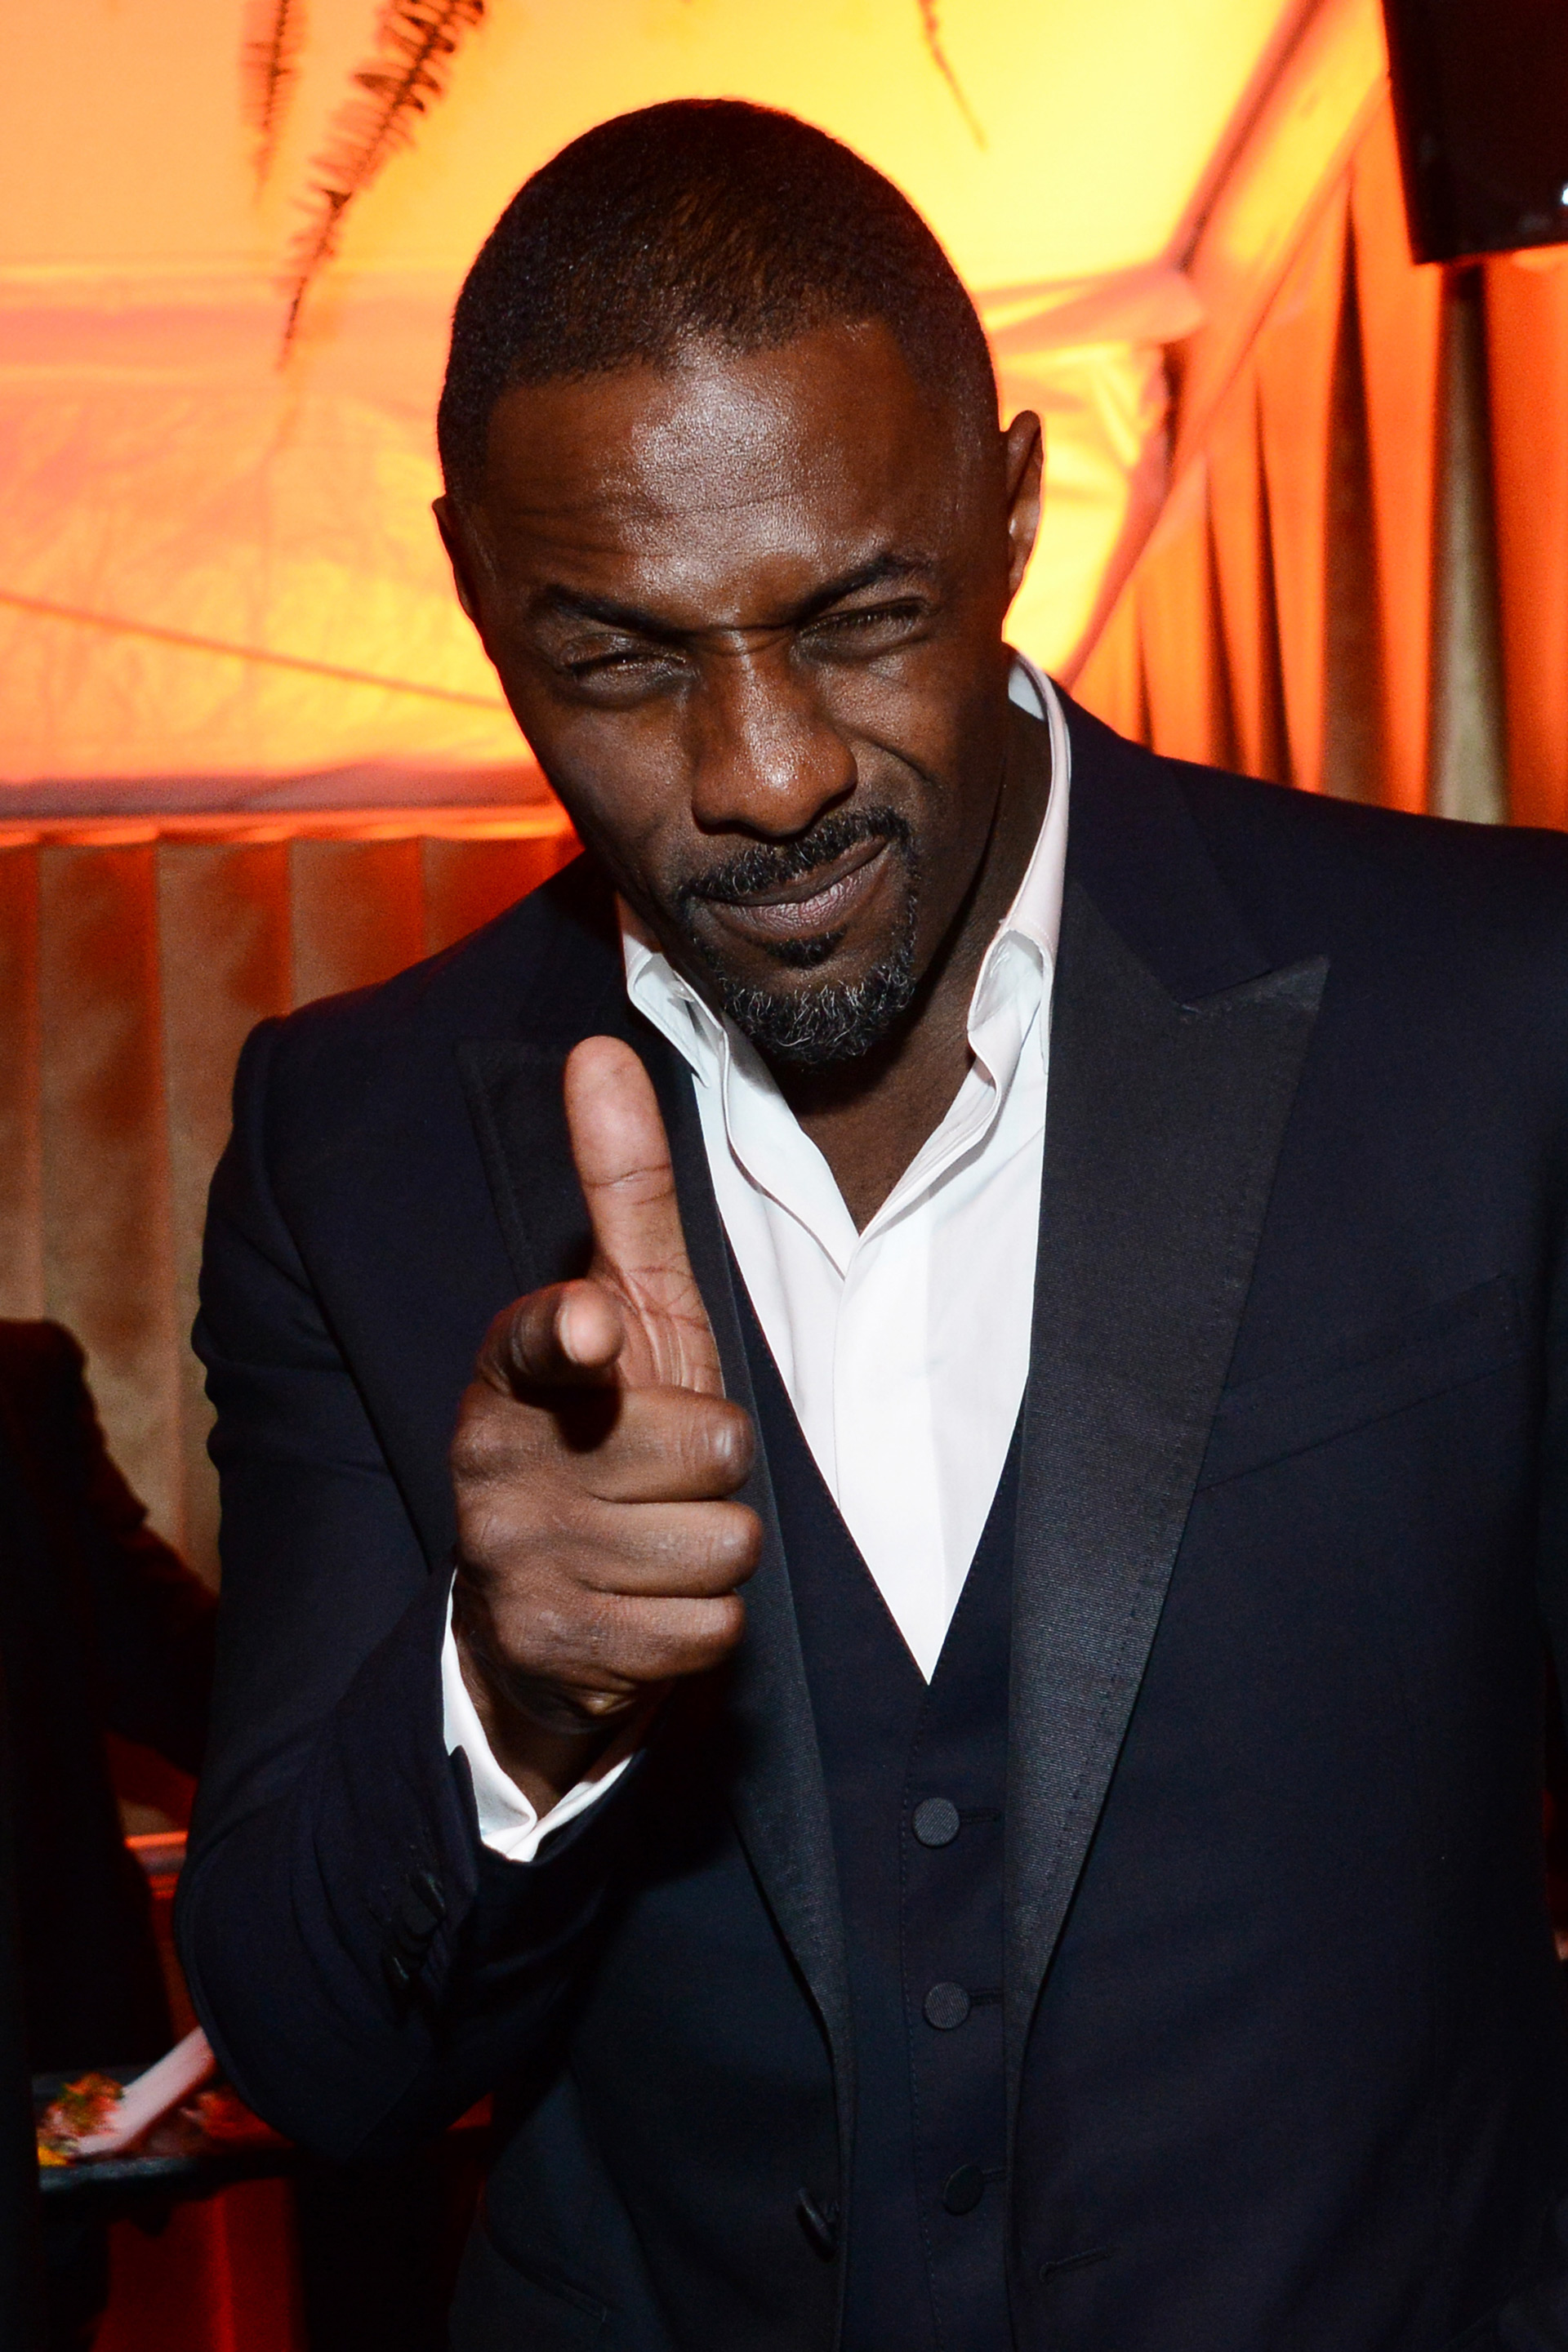 You know who would make a good nanny? Idris Elba